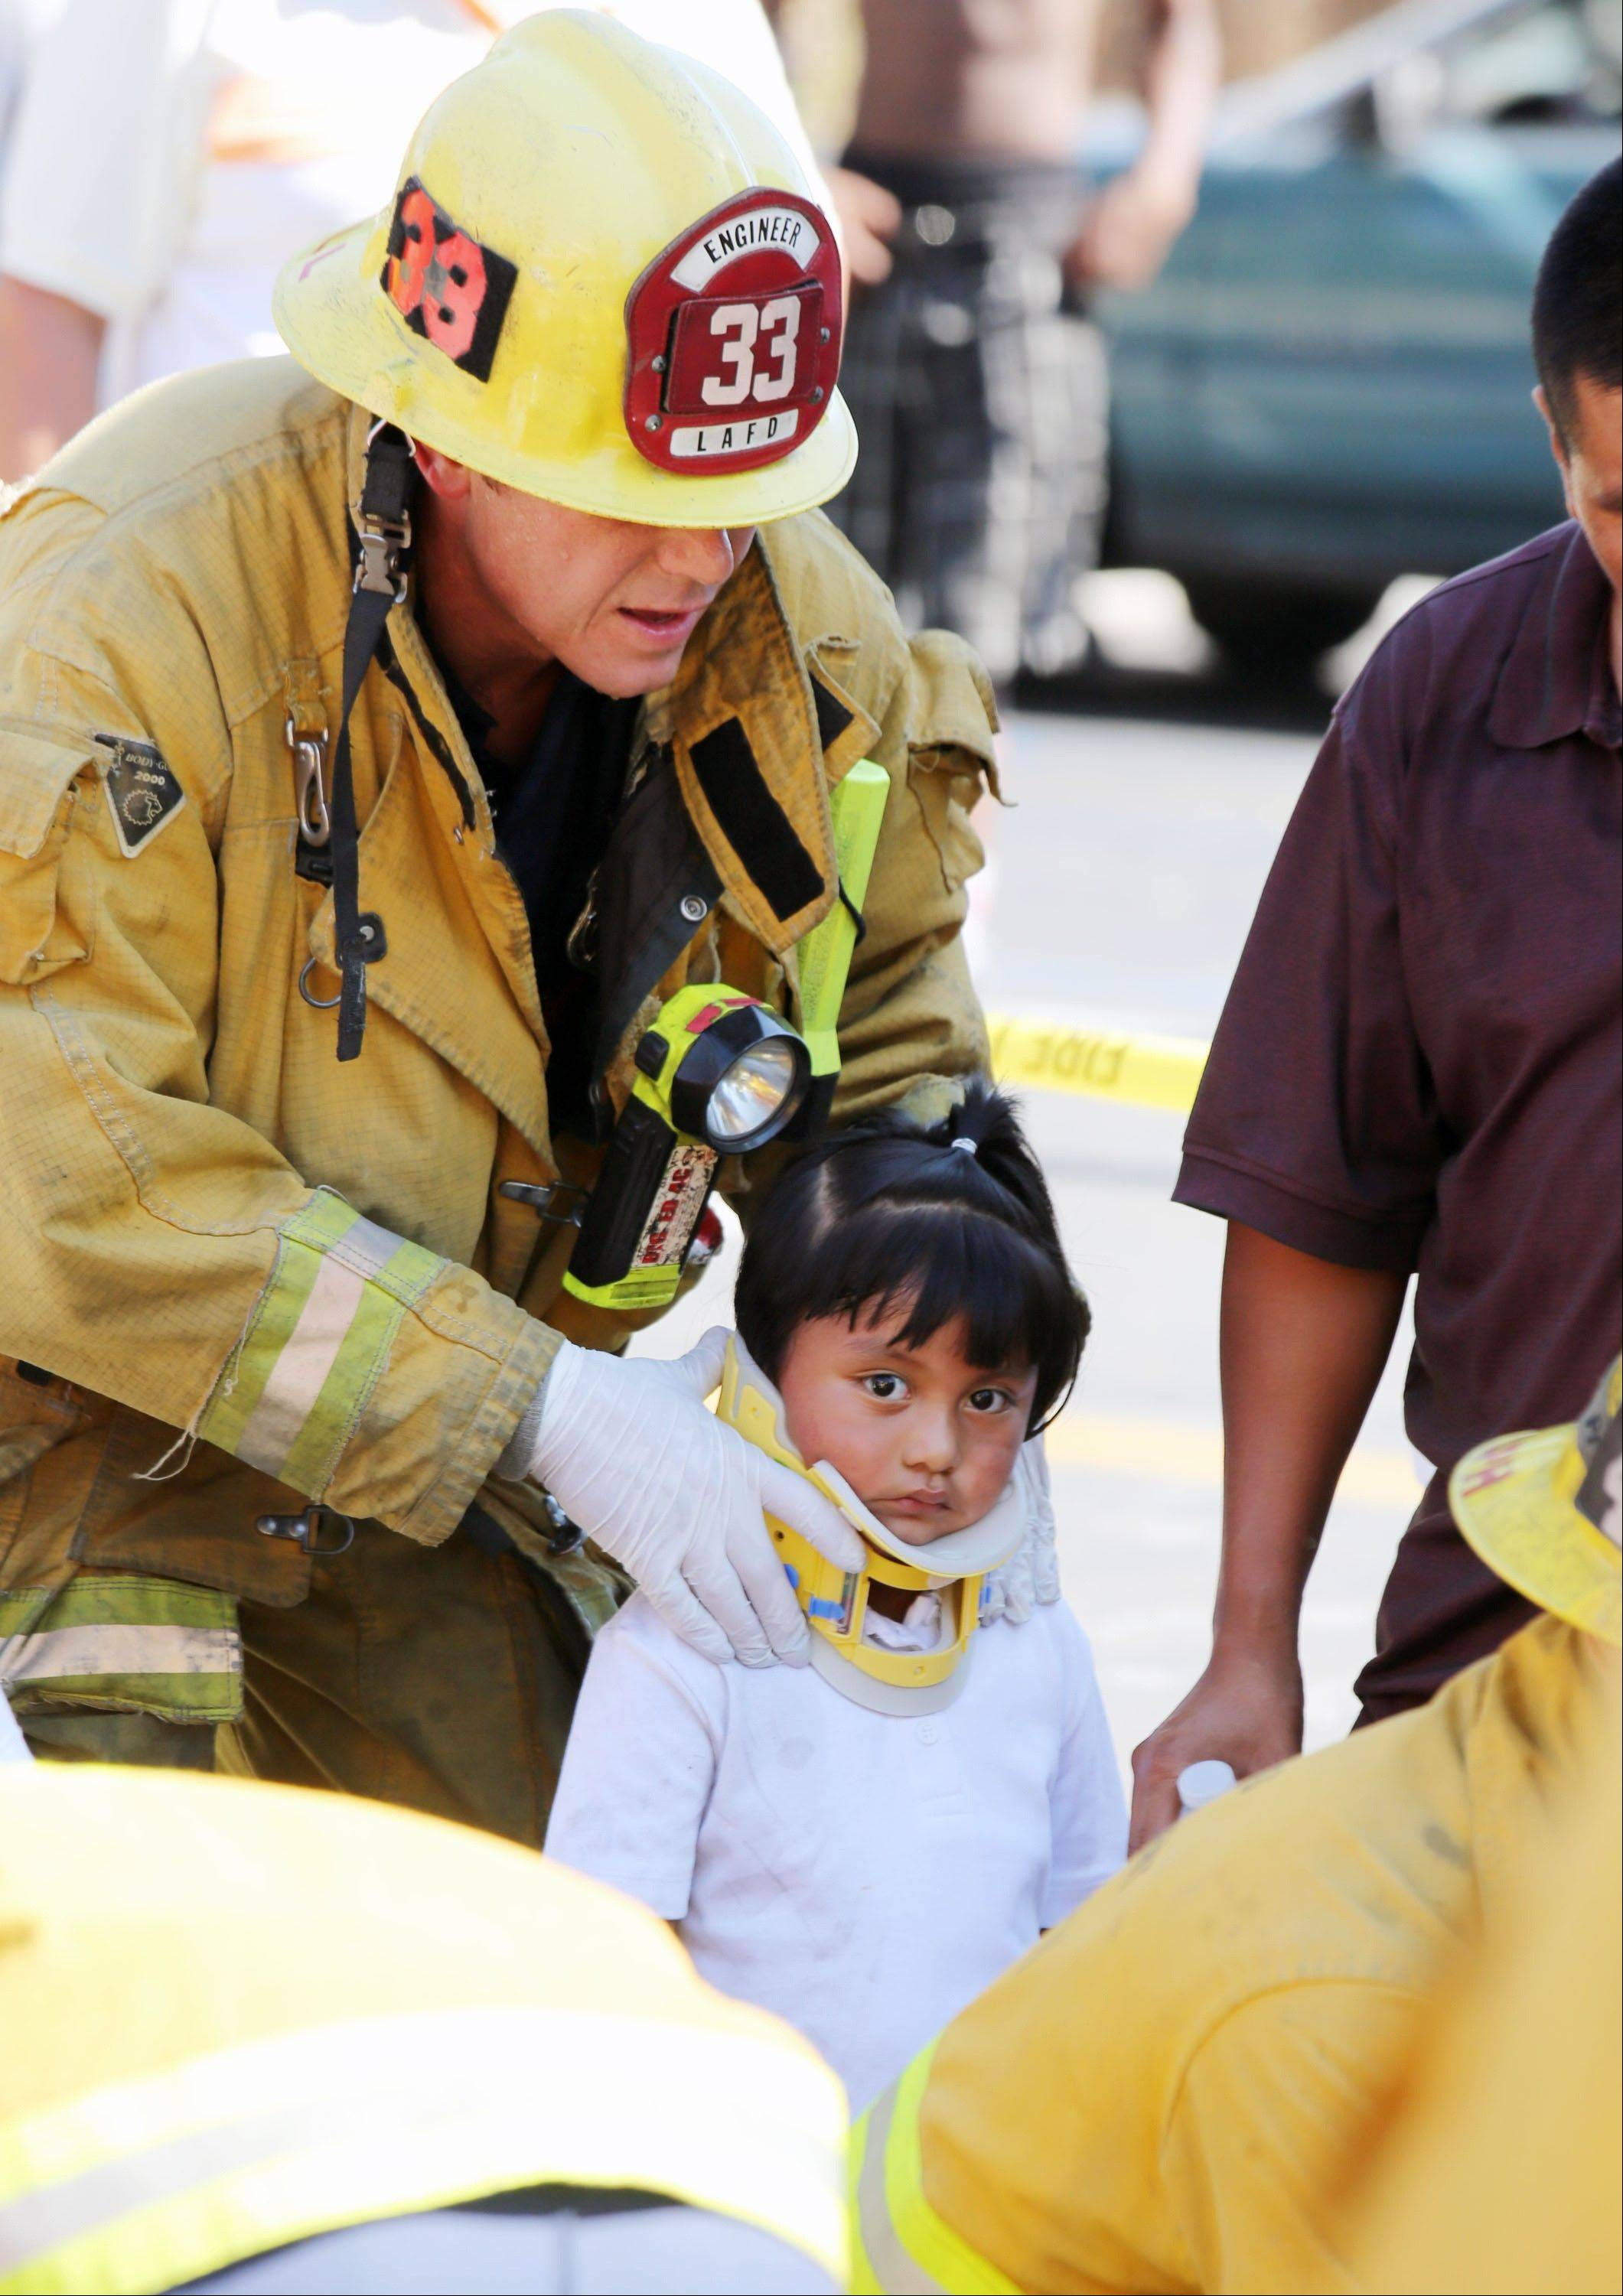 A Los Angeles City firefighter assists a child, one of eight people injured when a car sped onto a sidewalk and plowed into a group of parents and children outside Main Street Elementary school, Wednesday Aug. 29, 2012 in Los Angeles. The crash occurred at 2:50 p.m., shortly after school had let out for the day, according to a statement from the Los Angeles Unified School District.